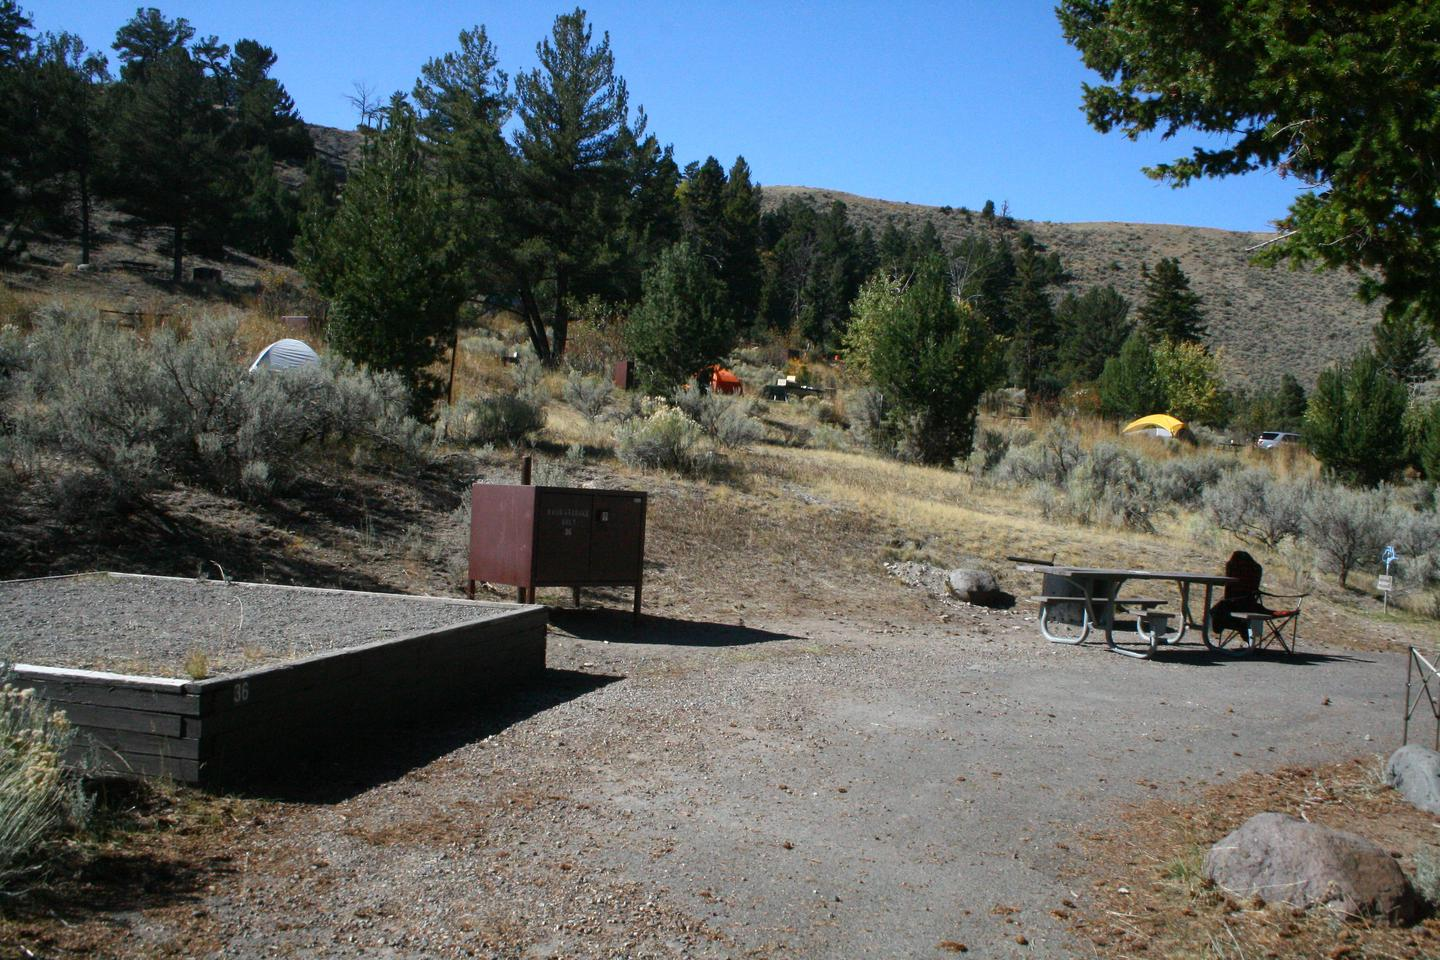 Mammoth Hot Springs Campground Site 36.Mammoth Campsite #36